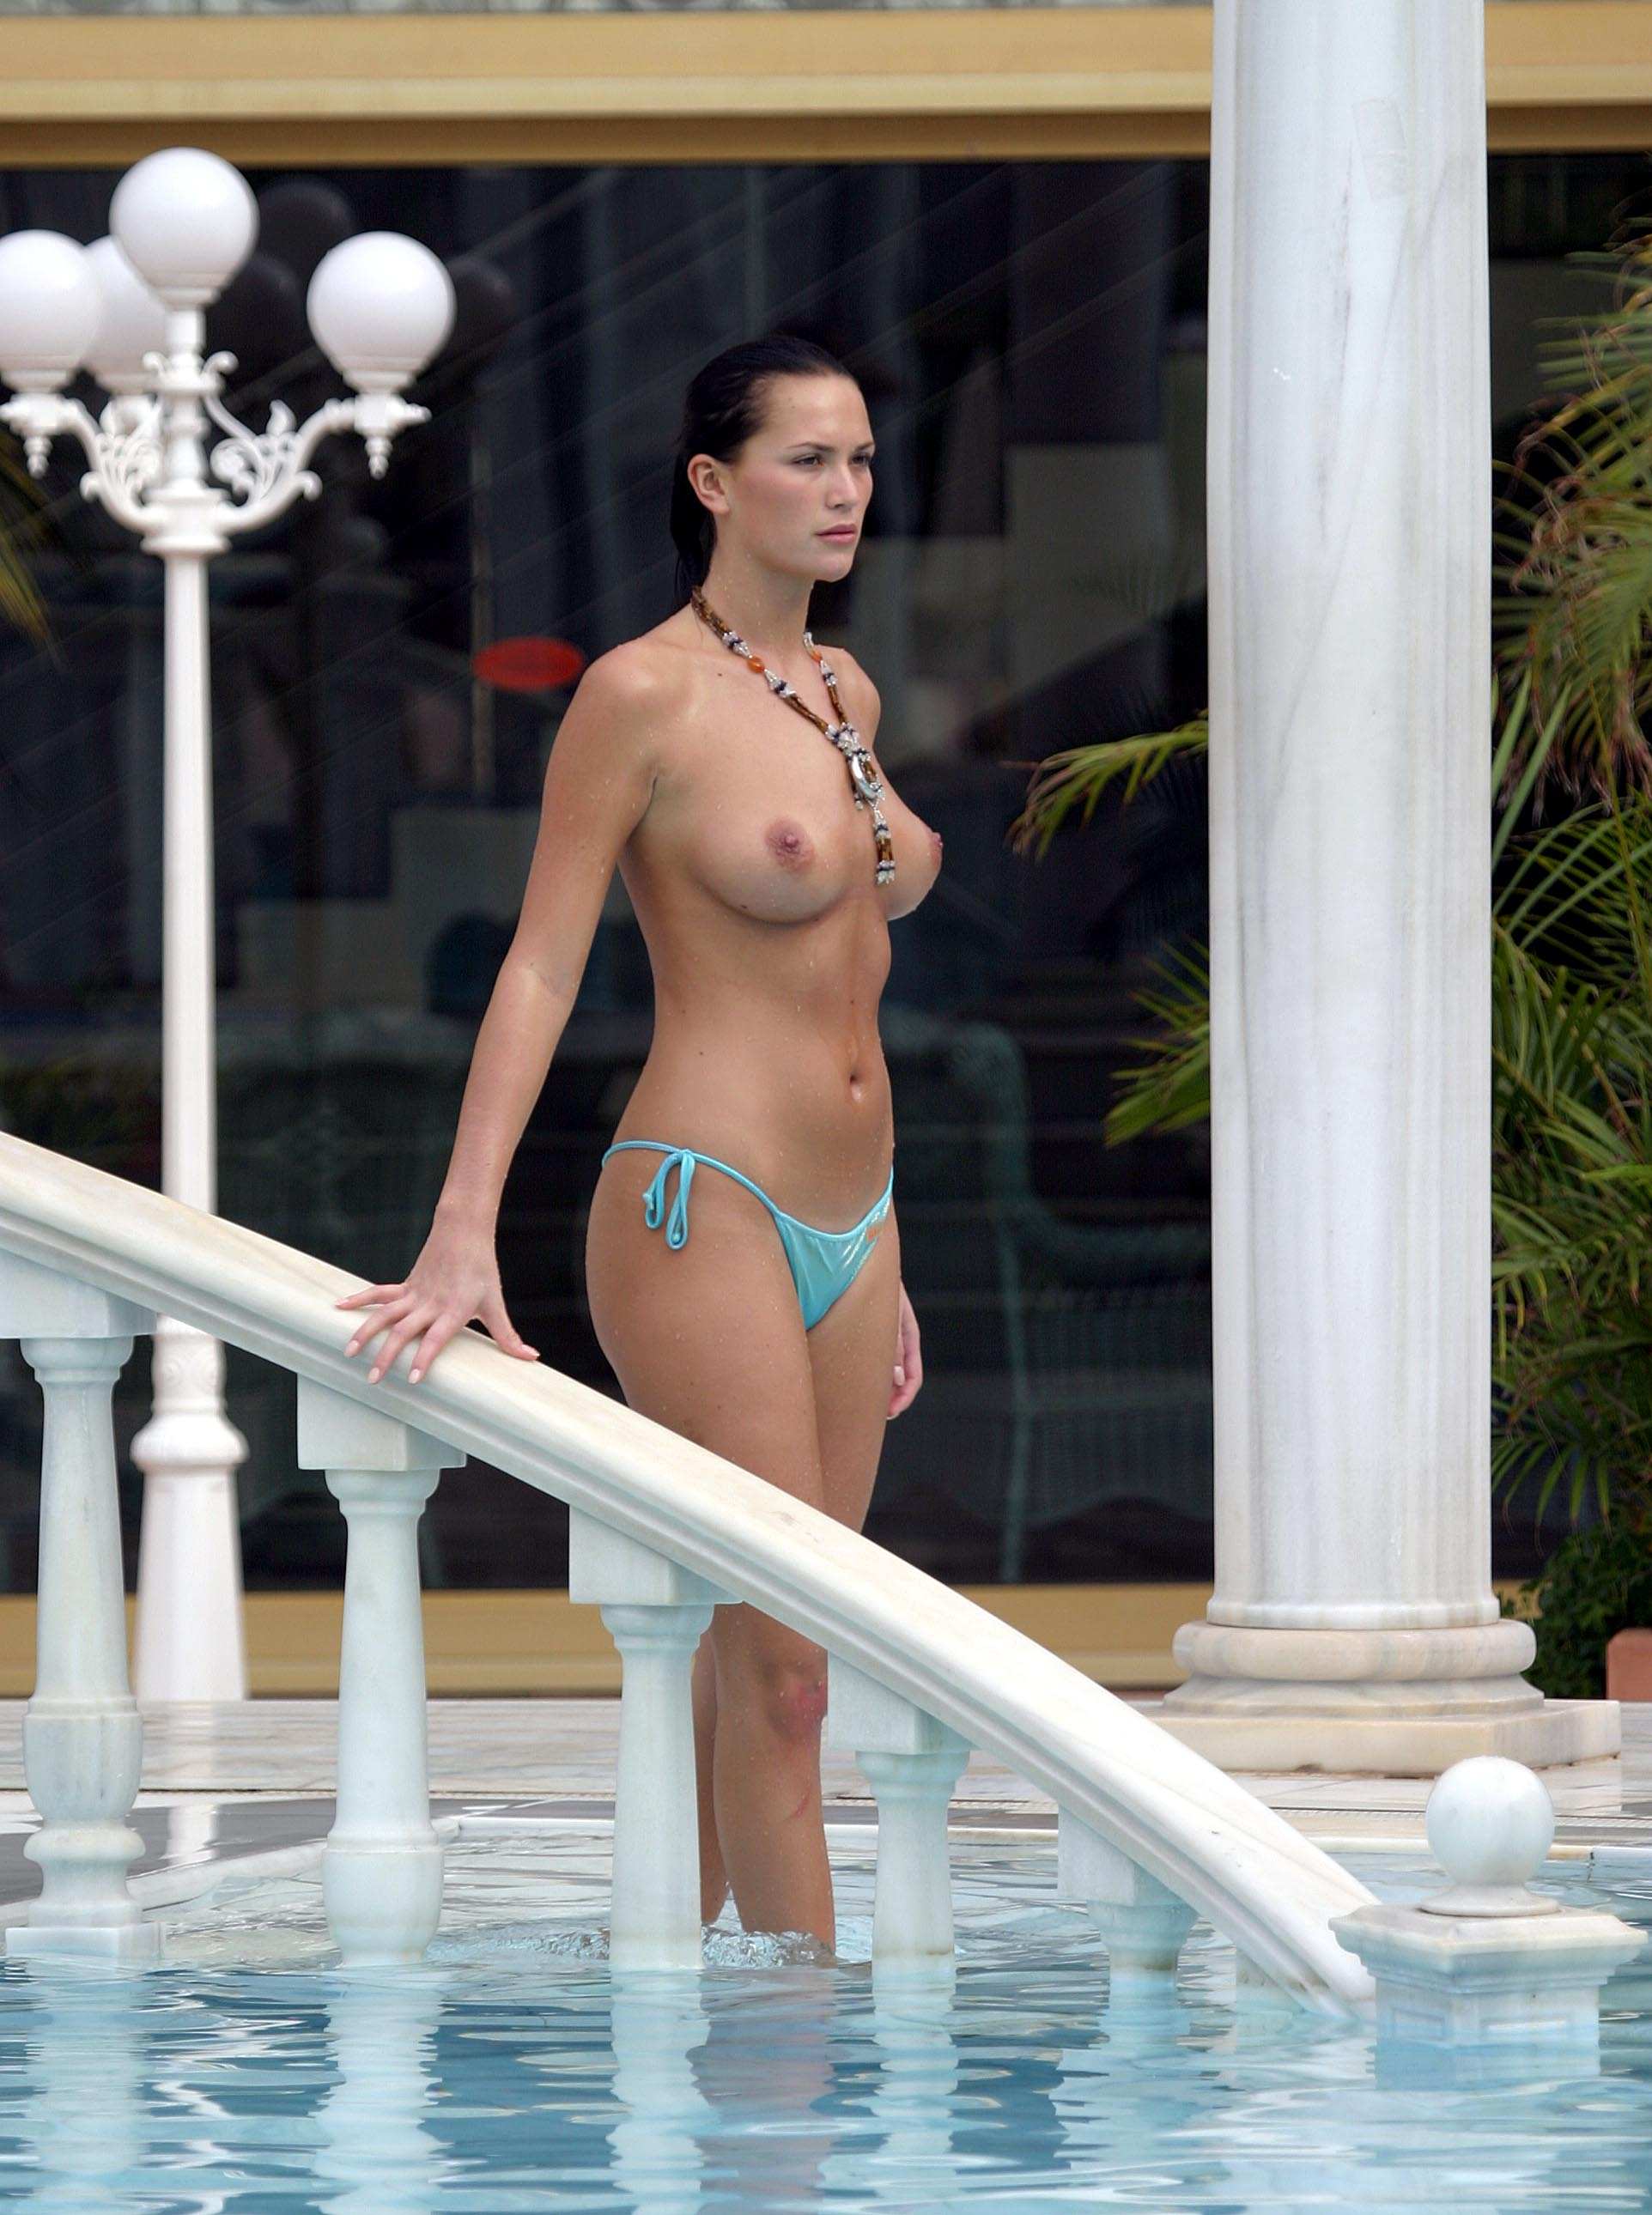 Angelique Thomas Nue lucy-clarkson-topless-2 | celebrity-slips